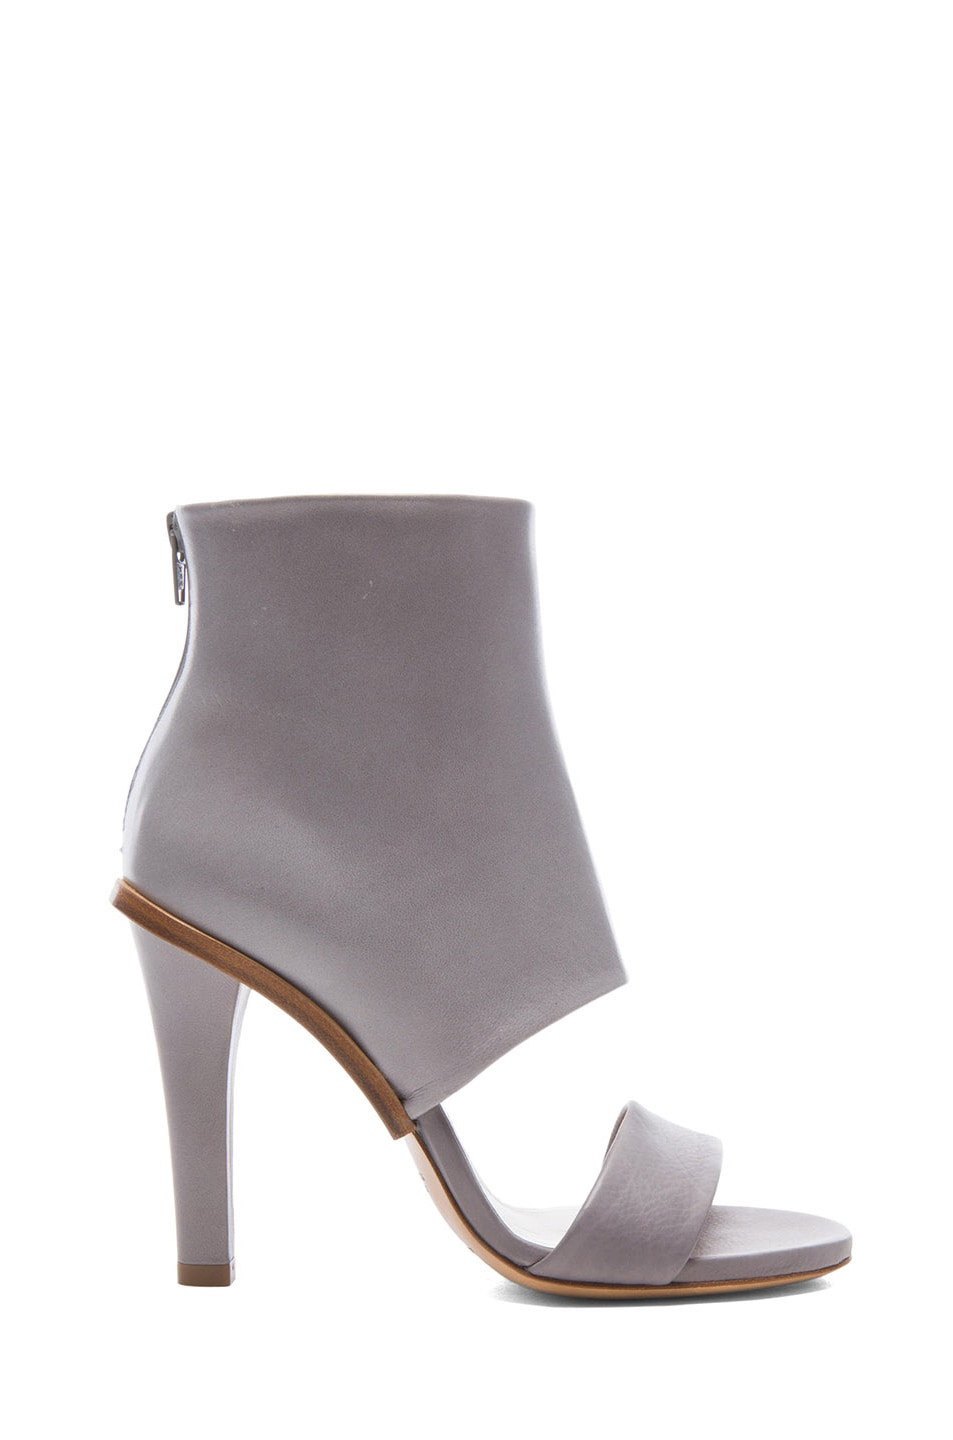 Image 1 of Maison Margiela Leather Heels in Mallow